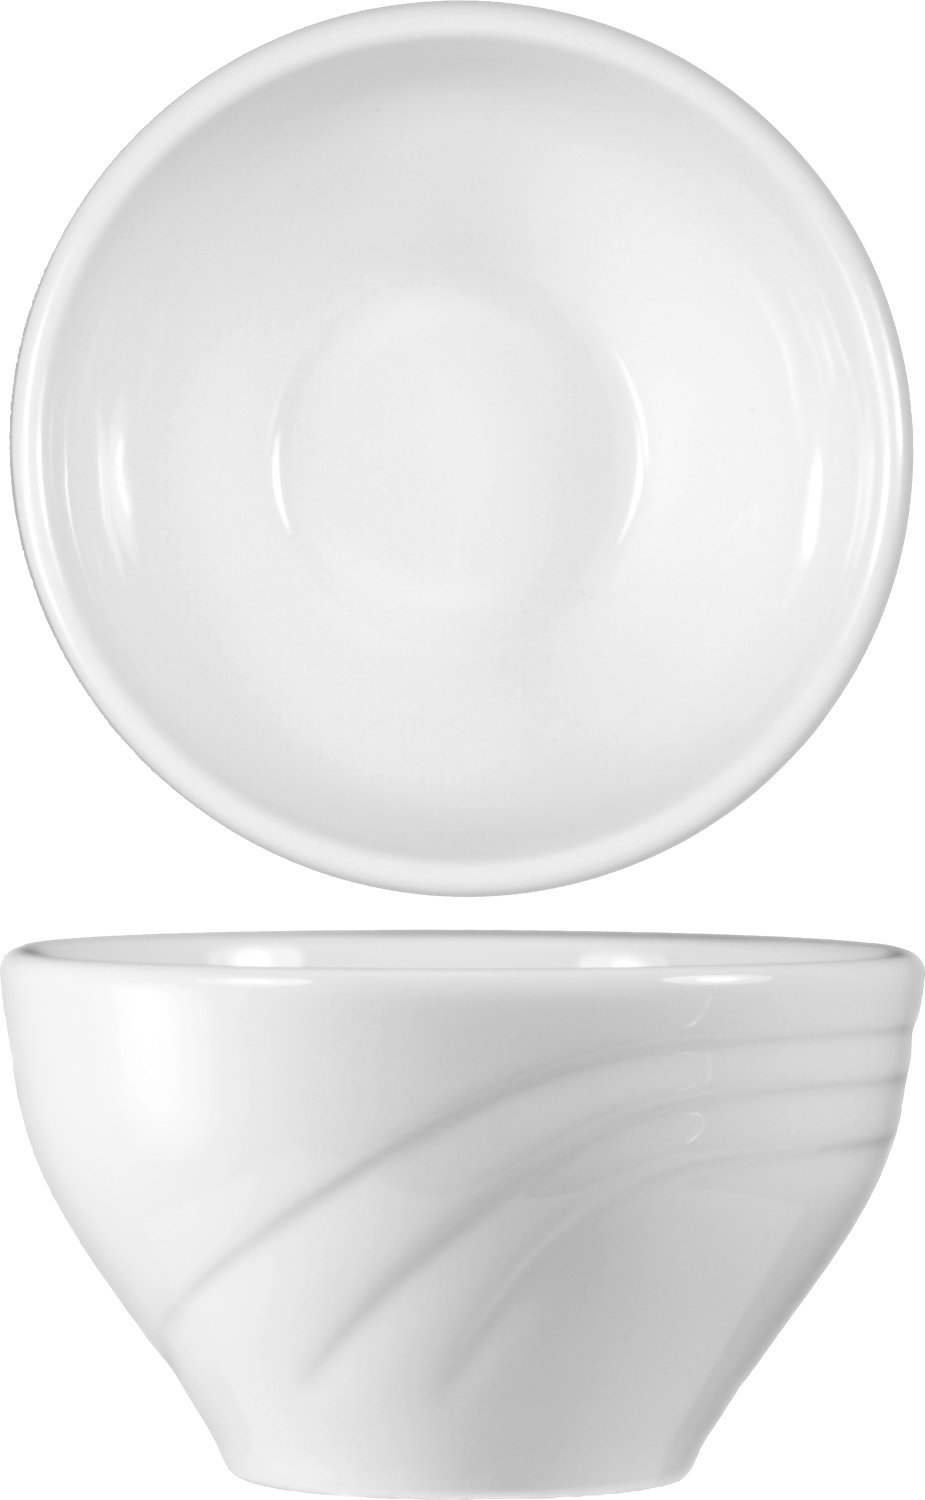 ITI AM-4 AMSTERDAM Embossed Pattern 36-Piece Bouillon Cup, 7-Ounce, White